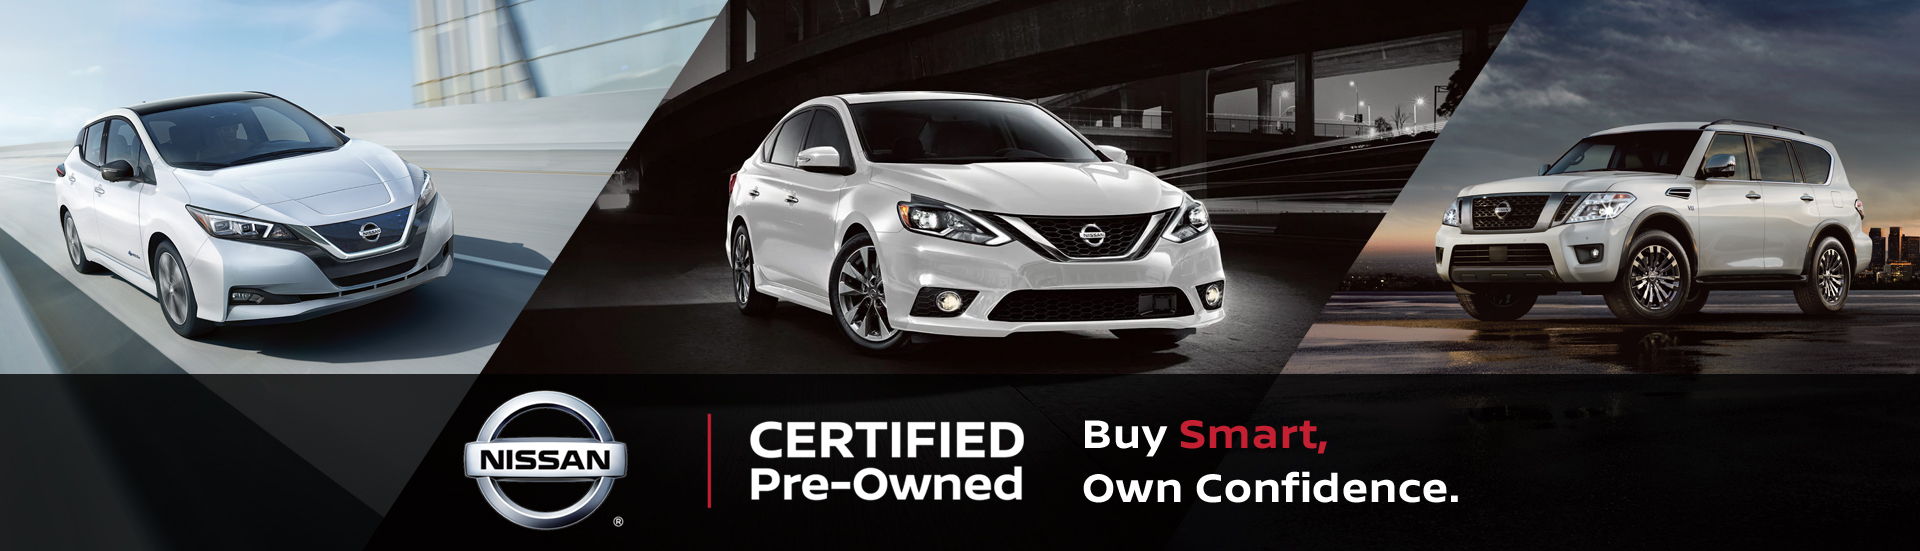 Certified Pre-Owned. Buy Smart, Own Confidence.